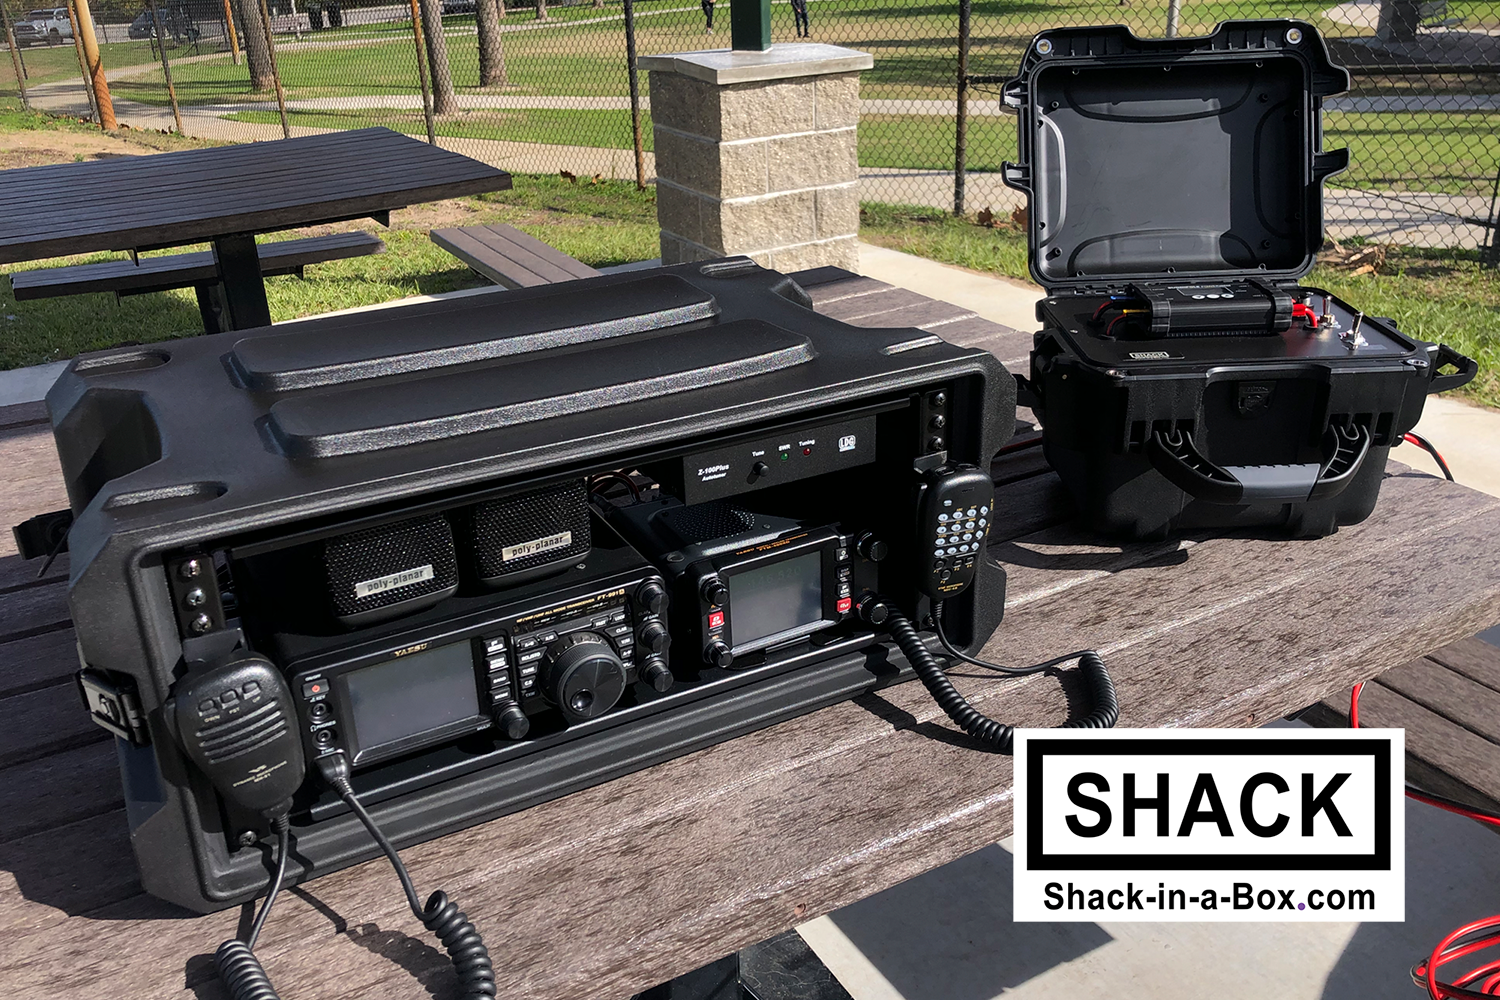 HF/VHF/UHF All-in-One Shack-in-a-Box pictured with the Solaris Plus v2.0 360WH Solar Generator